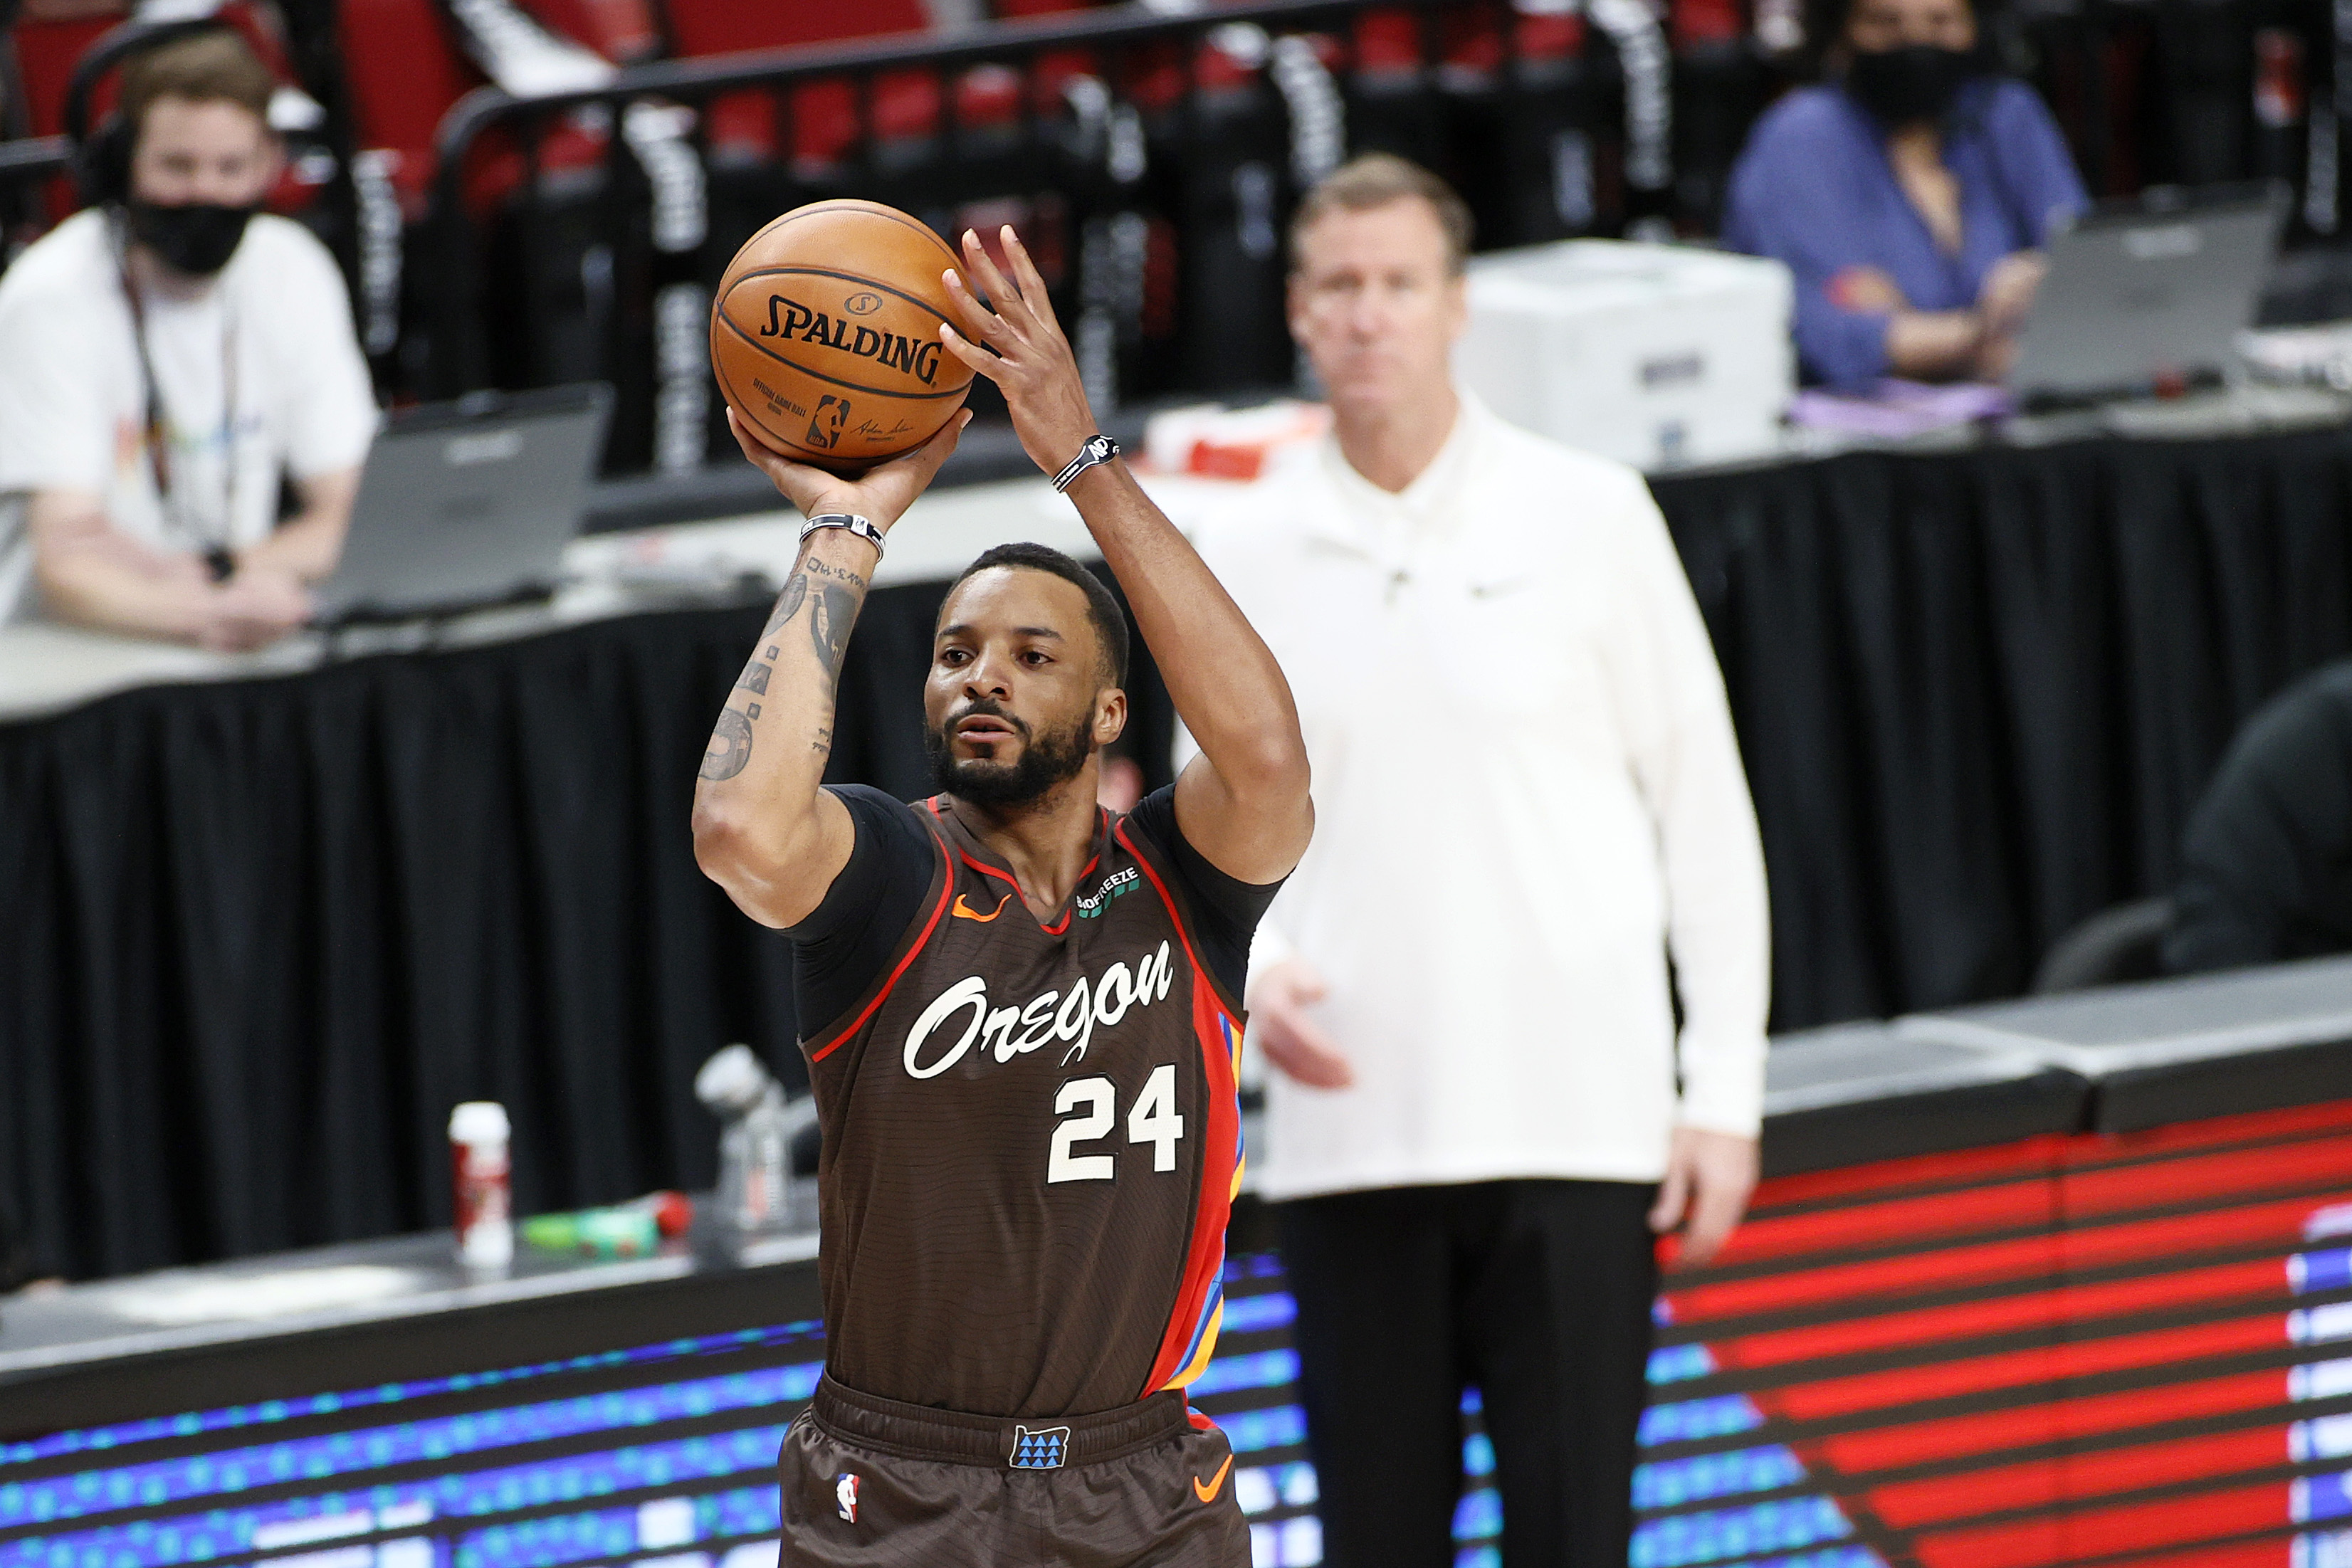 Norman Powell #24 of the Portland Trail Blazers attempts a three point basket against the Denver Nuggets during Round 1, Game 6 of the 2021 NBA Playoffs at Moda Center on June 03, 2021 in Portland, Oregon.